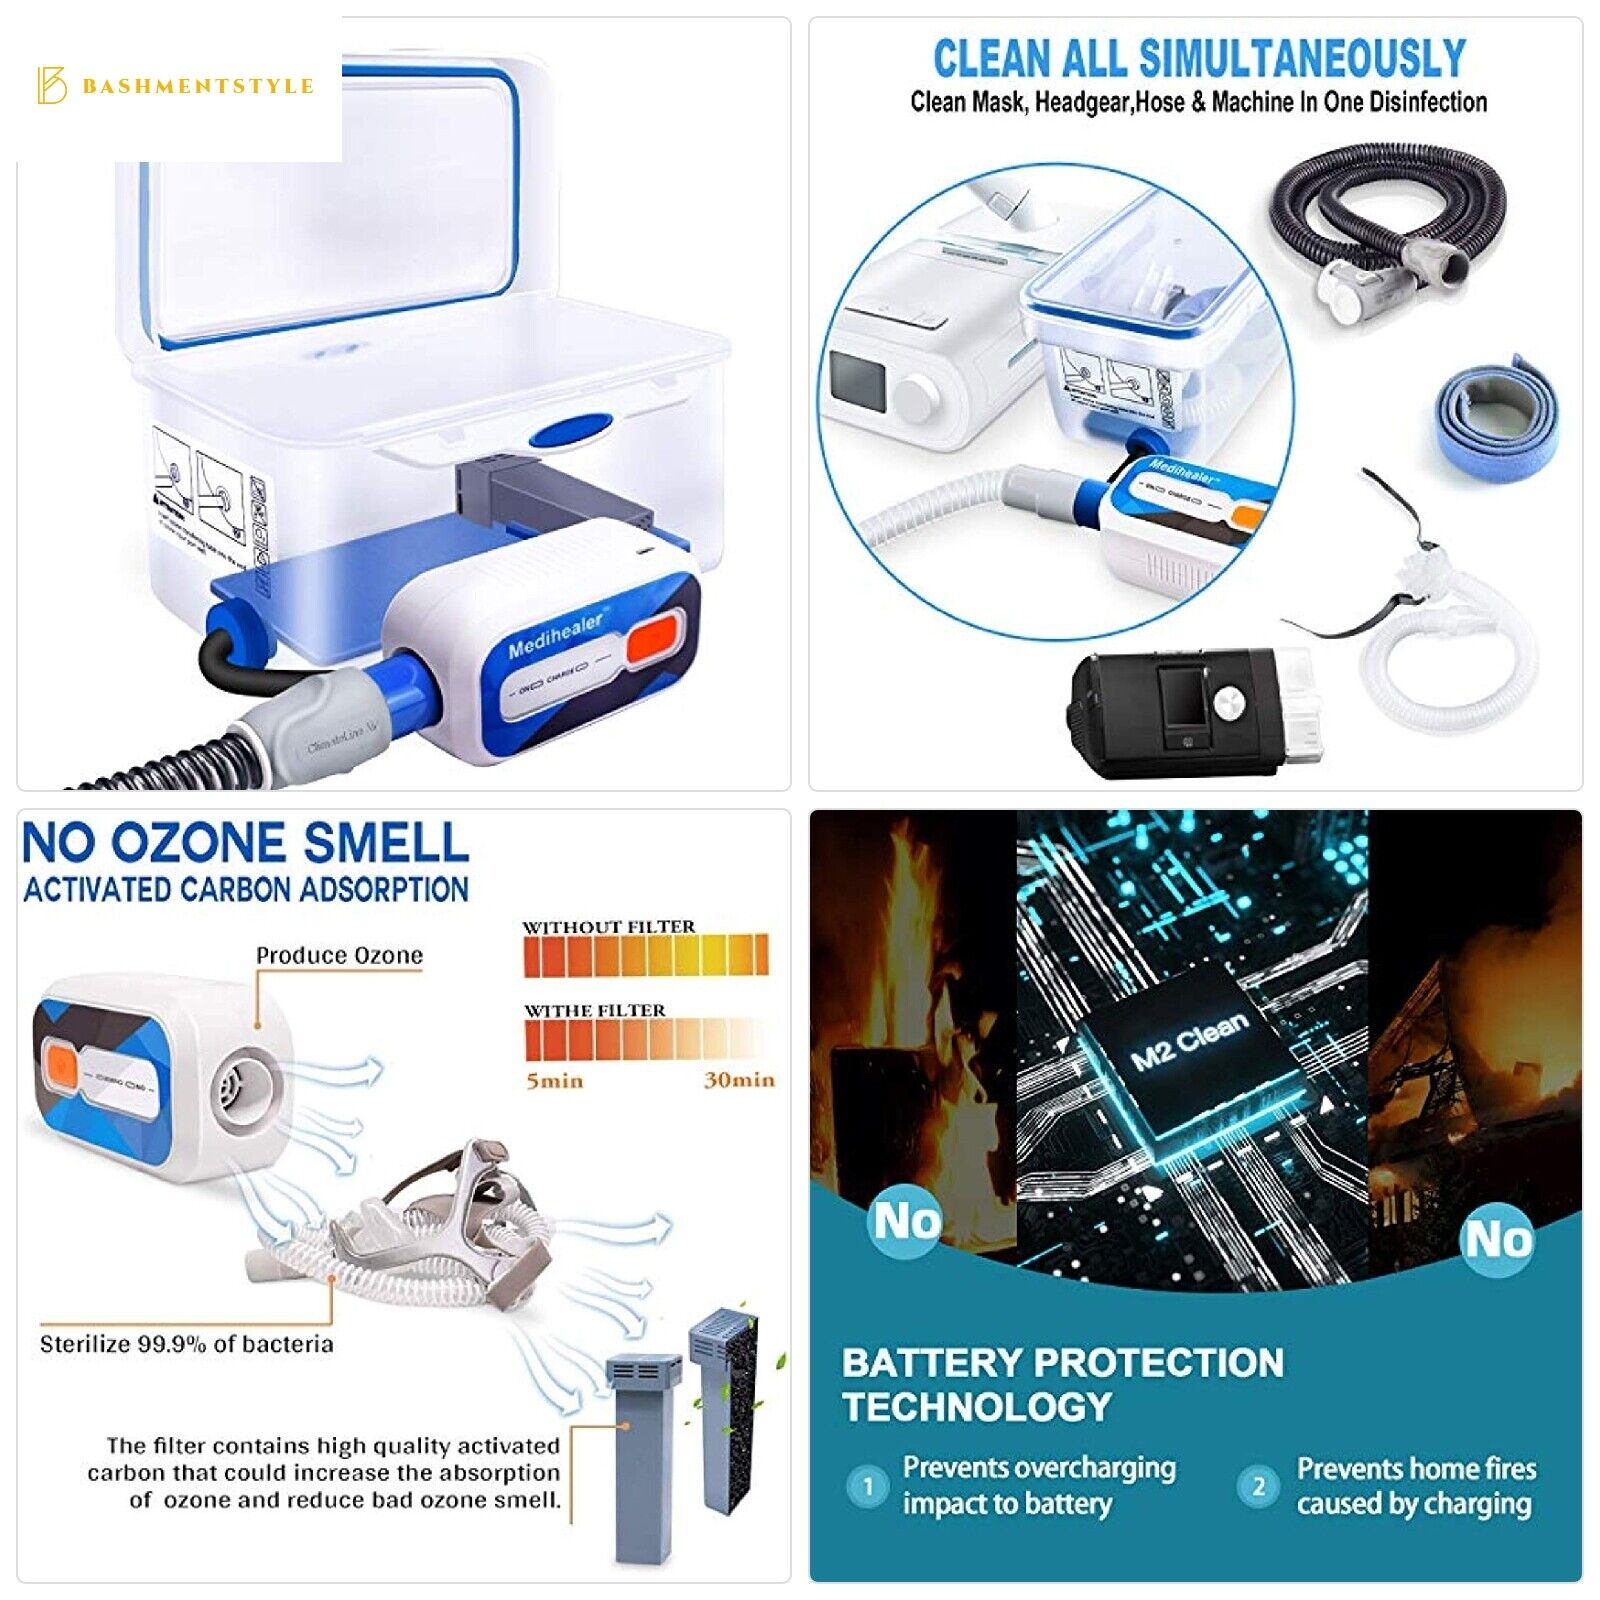 CPAP Cleaner and Sanitizer, Cleaner and Sanitizing Machine -